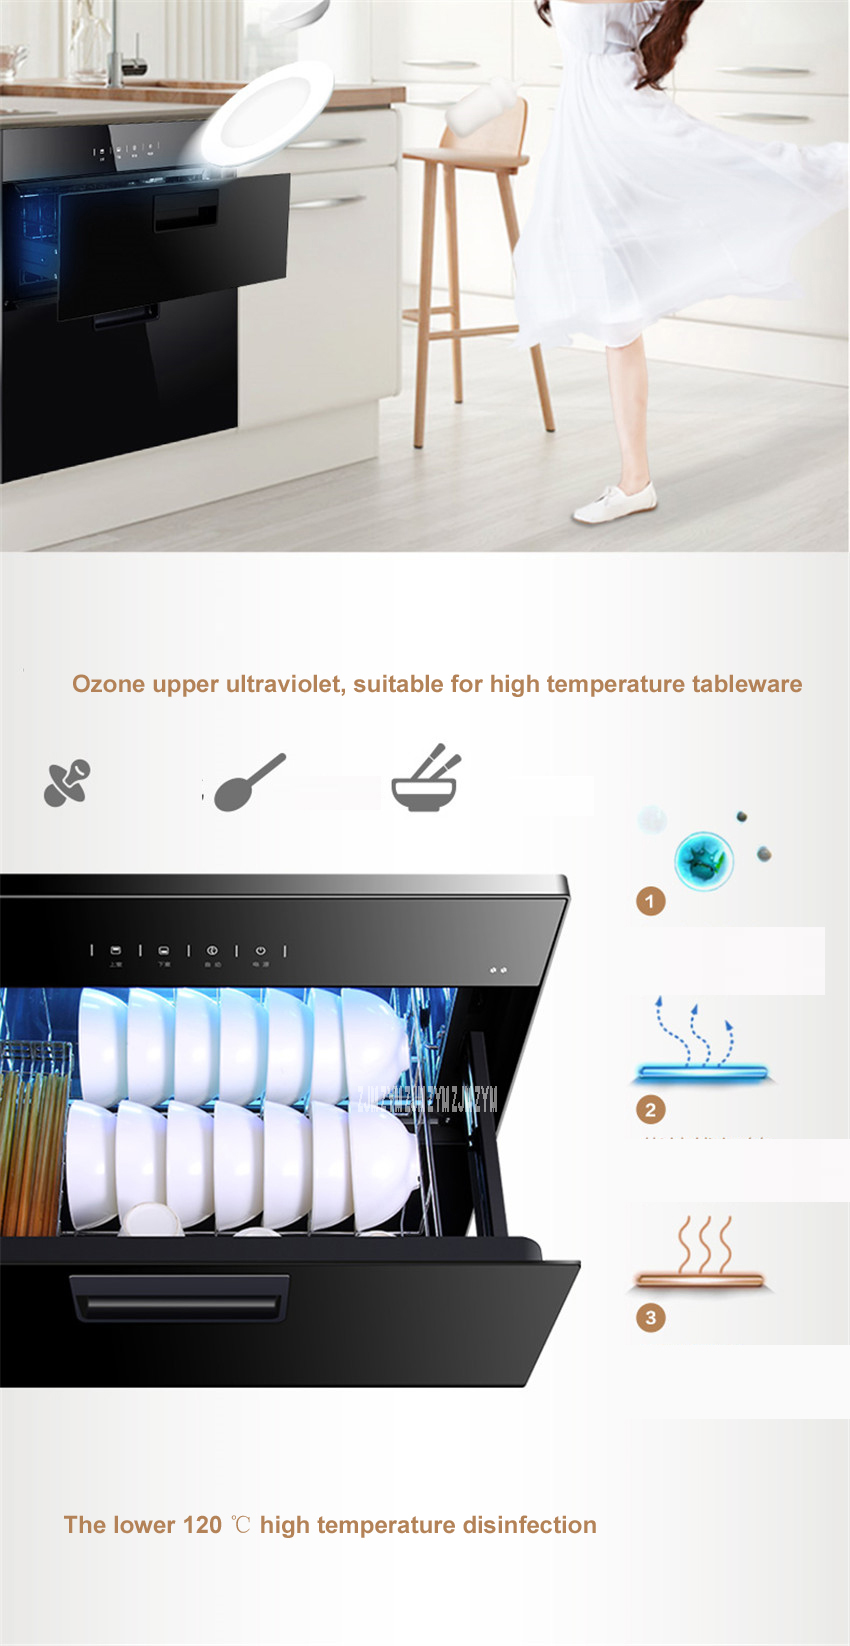 MXV-ZLP90Q15 kitchen 86L electronic touch control embedded disinfection cabinet infrared ultraviolet disinfection cupboard 4